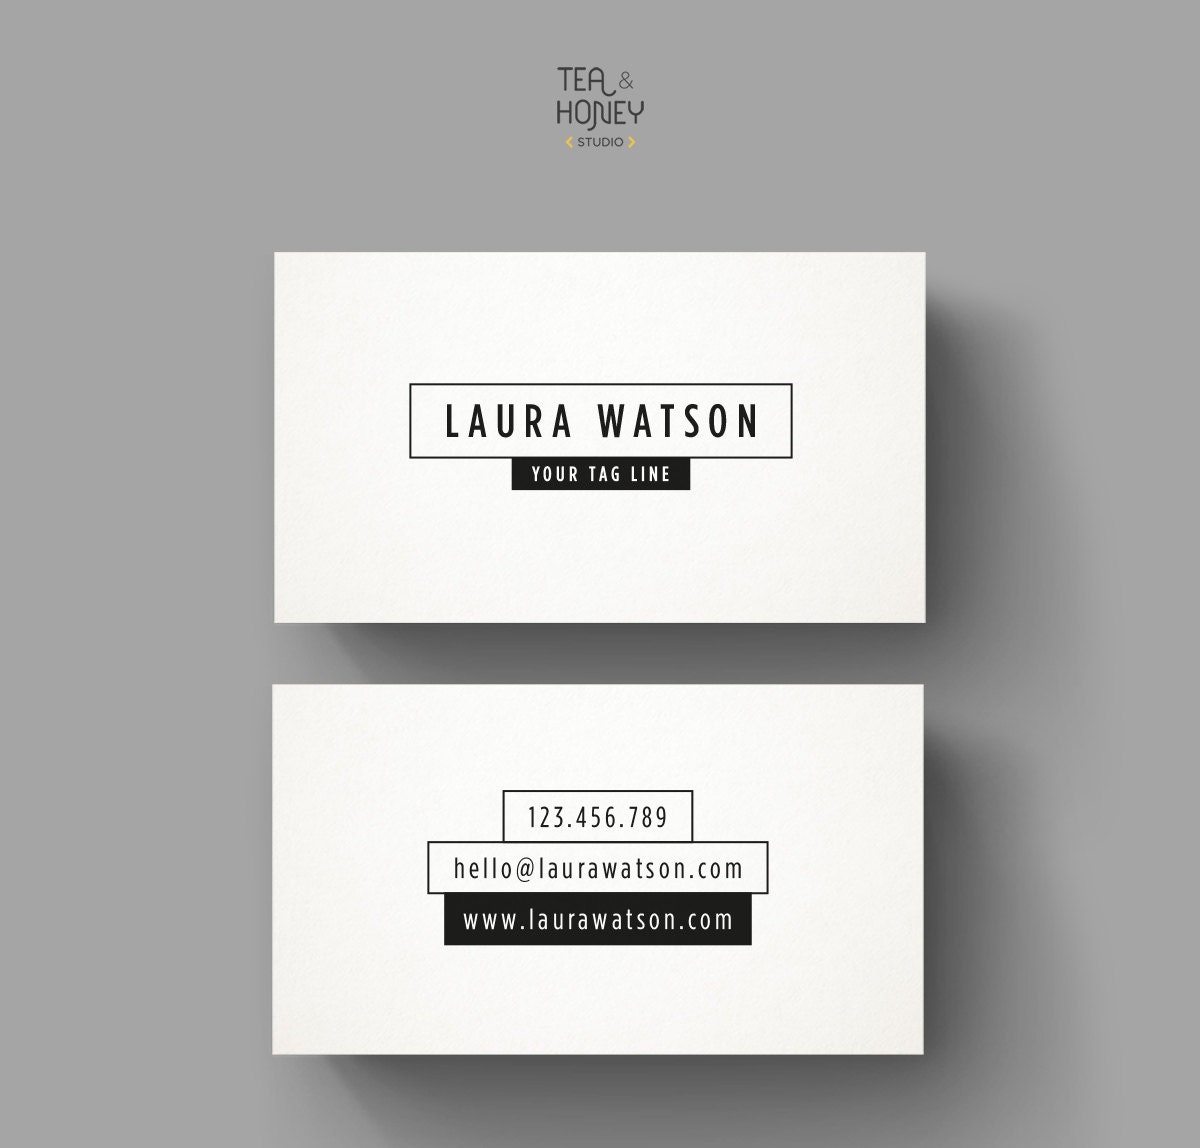 Minimalistic black and white business card template Premade